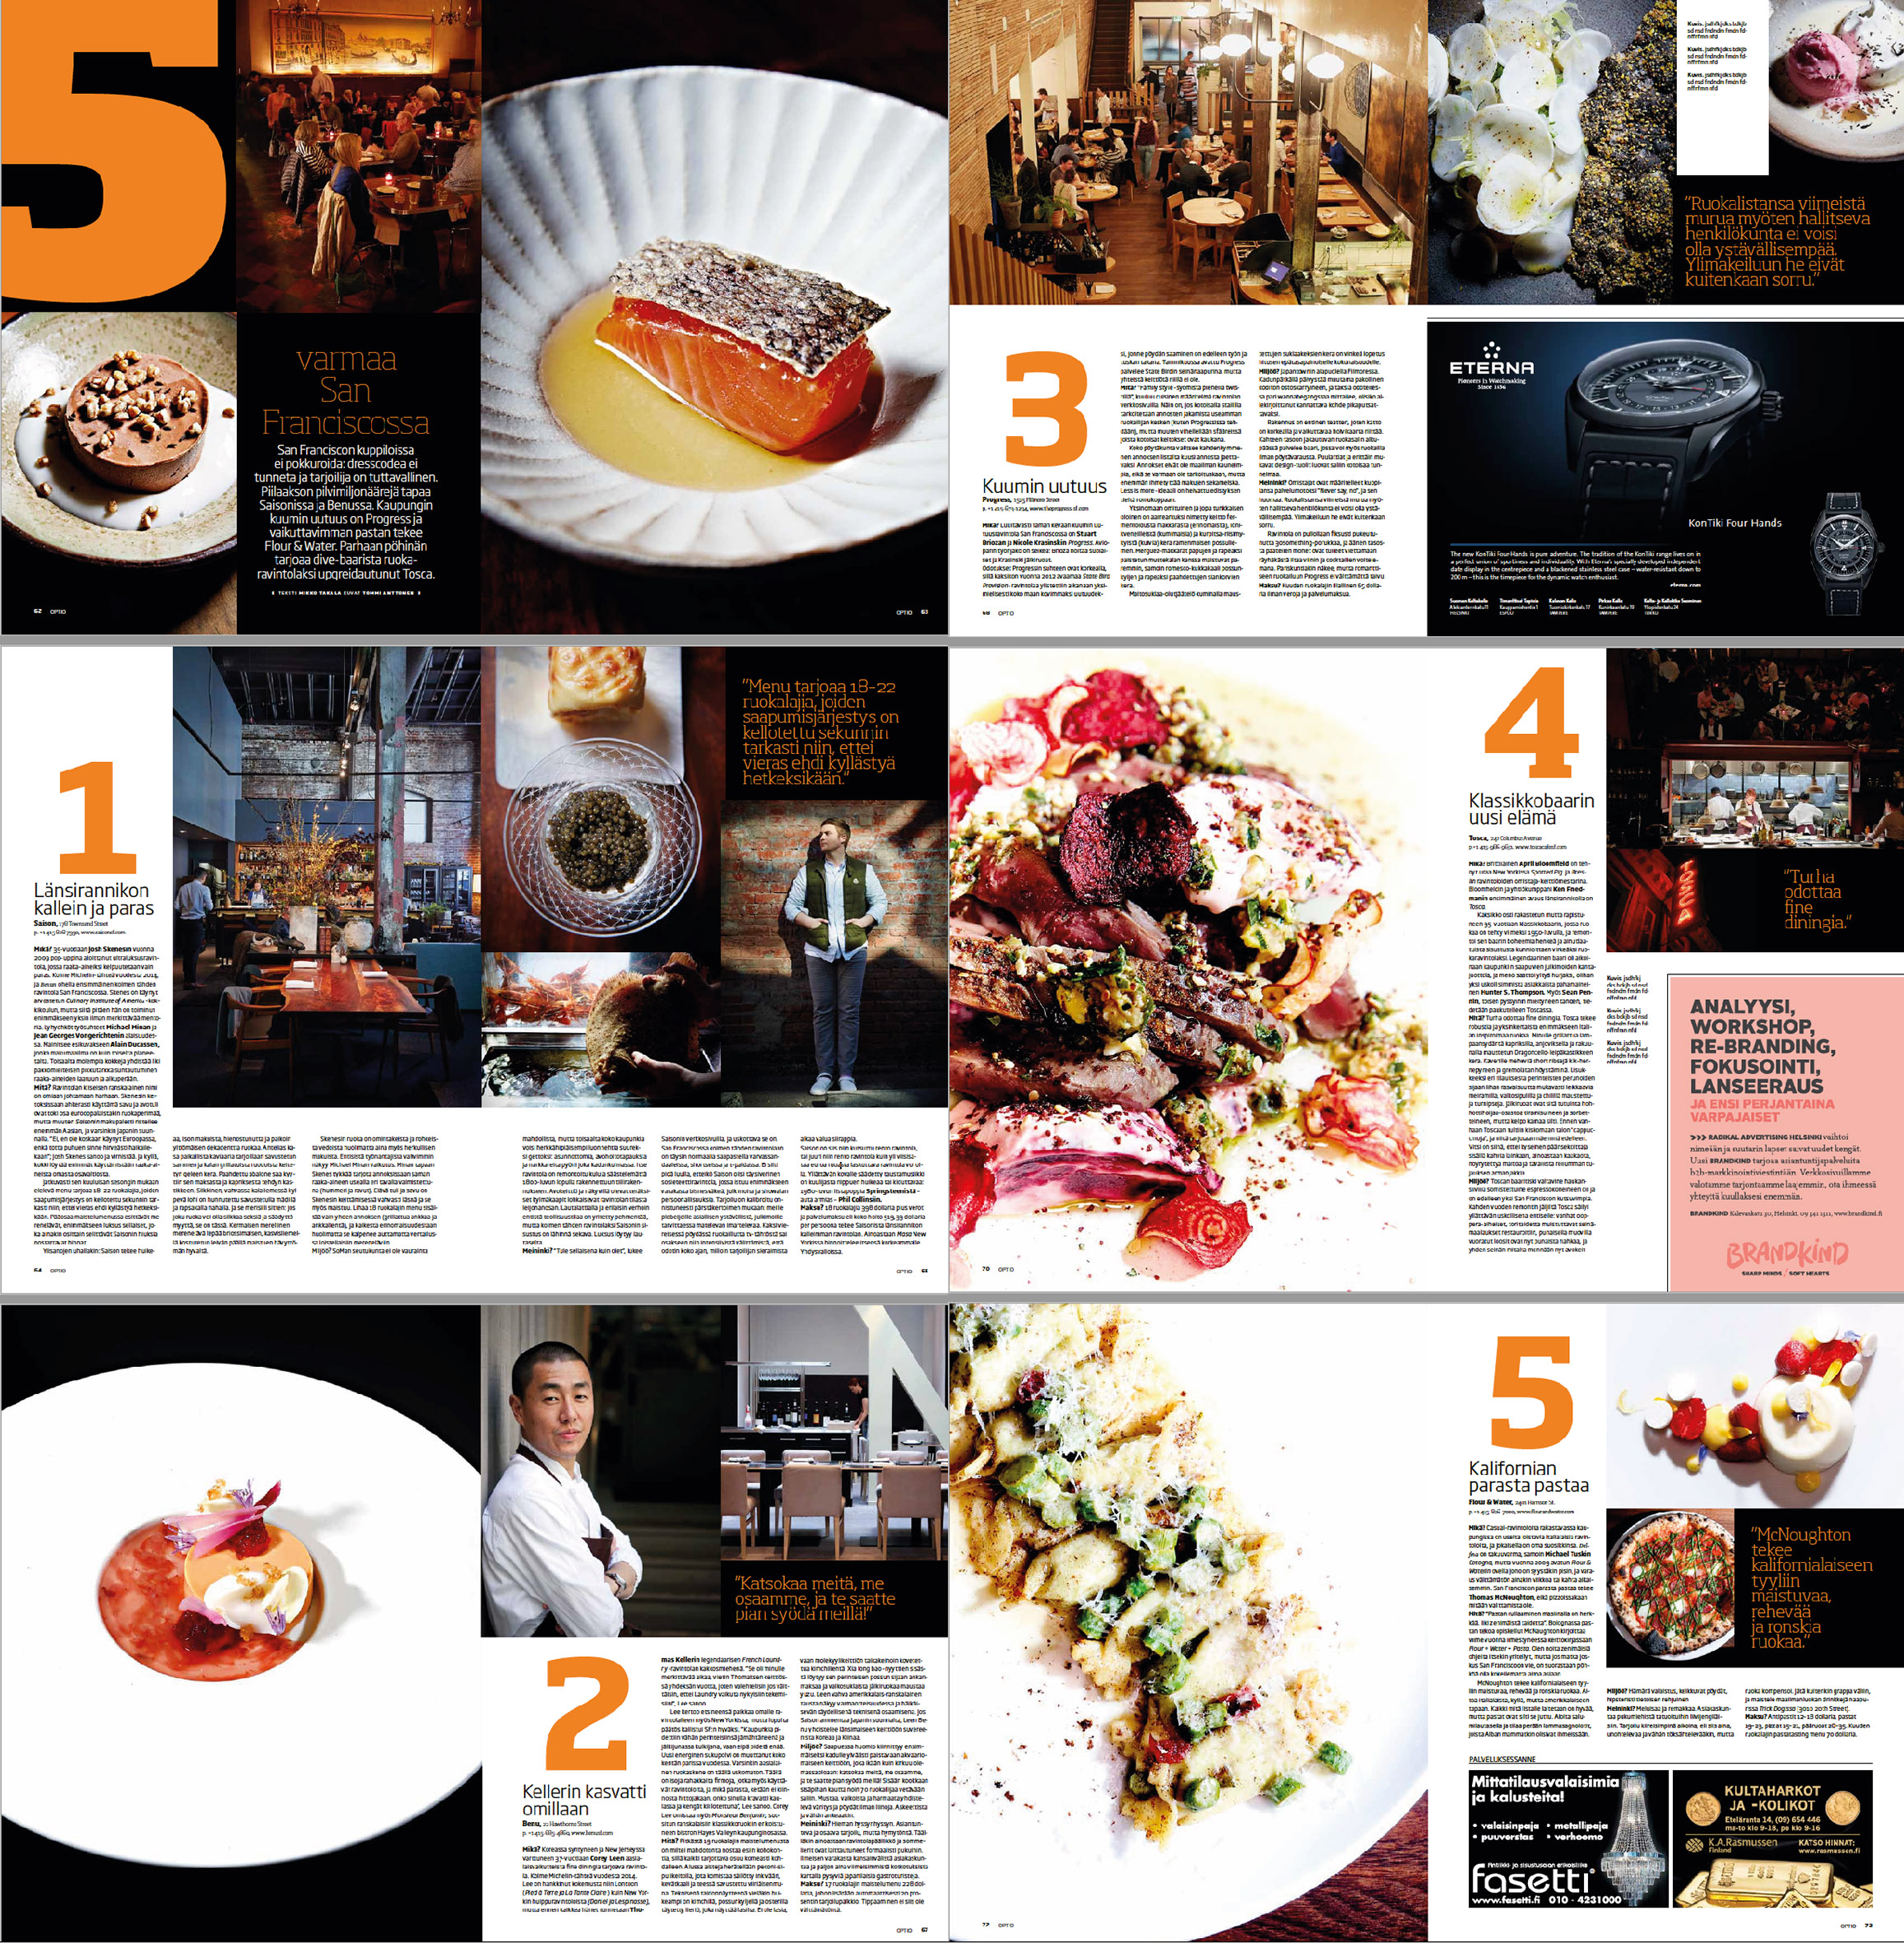 Optio-magazine 2015 | Restaurant feature | 5 Best San Francisco